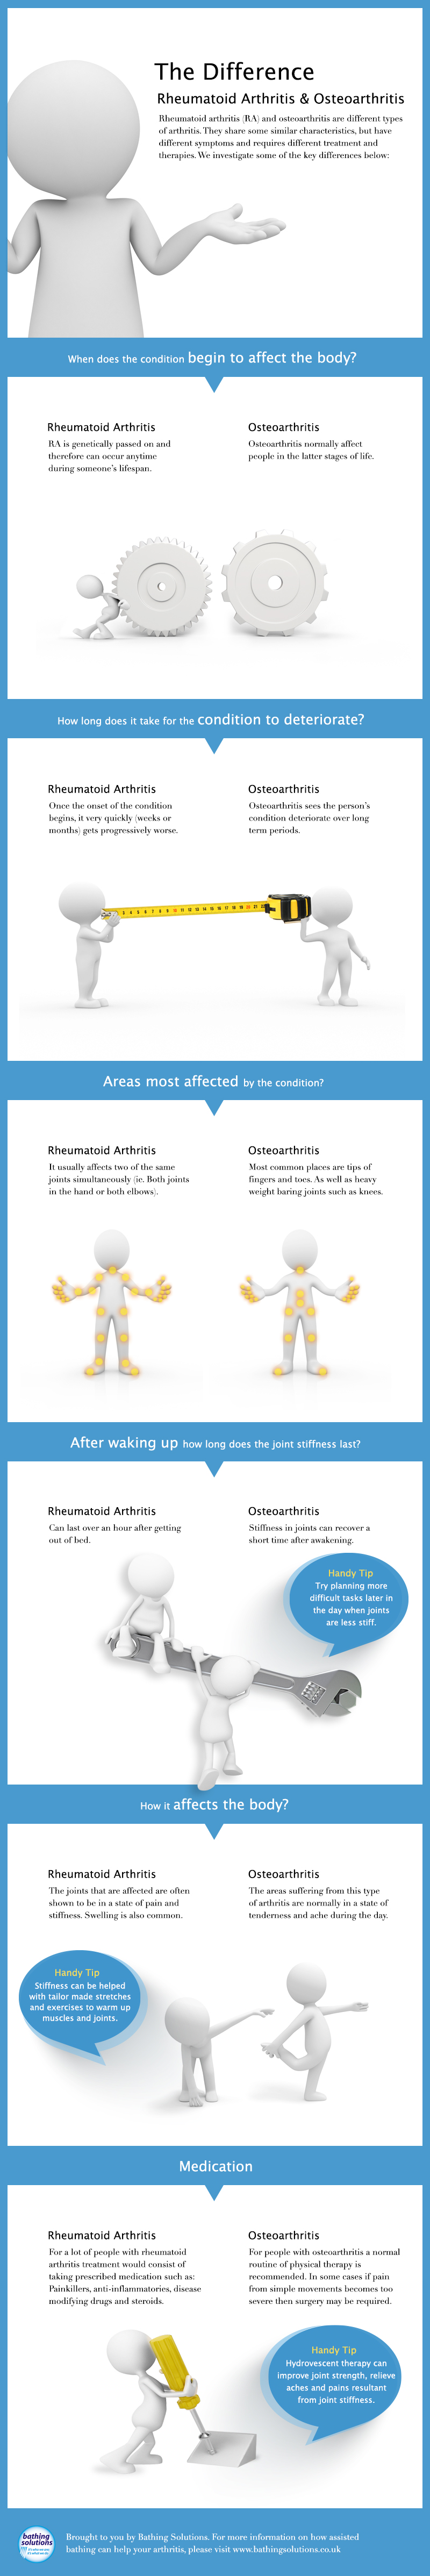 Infographic explaining differences between Rheumatoid Arthritis and Osteoarthritis